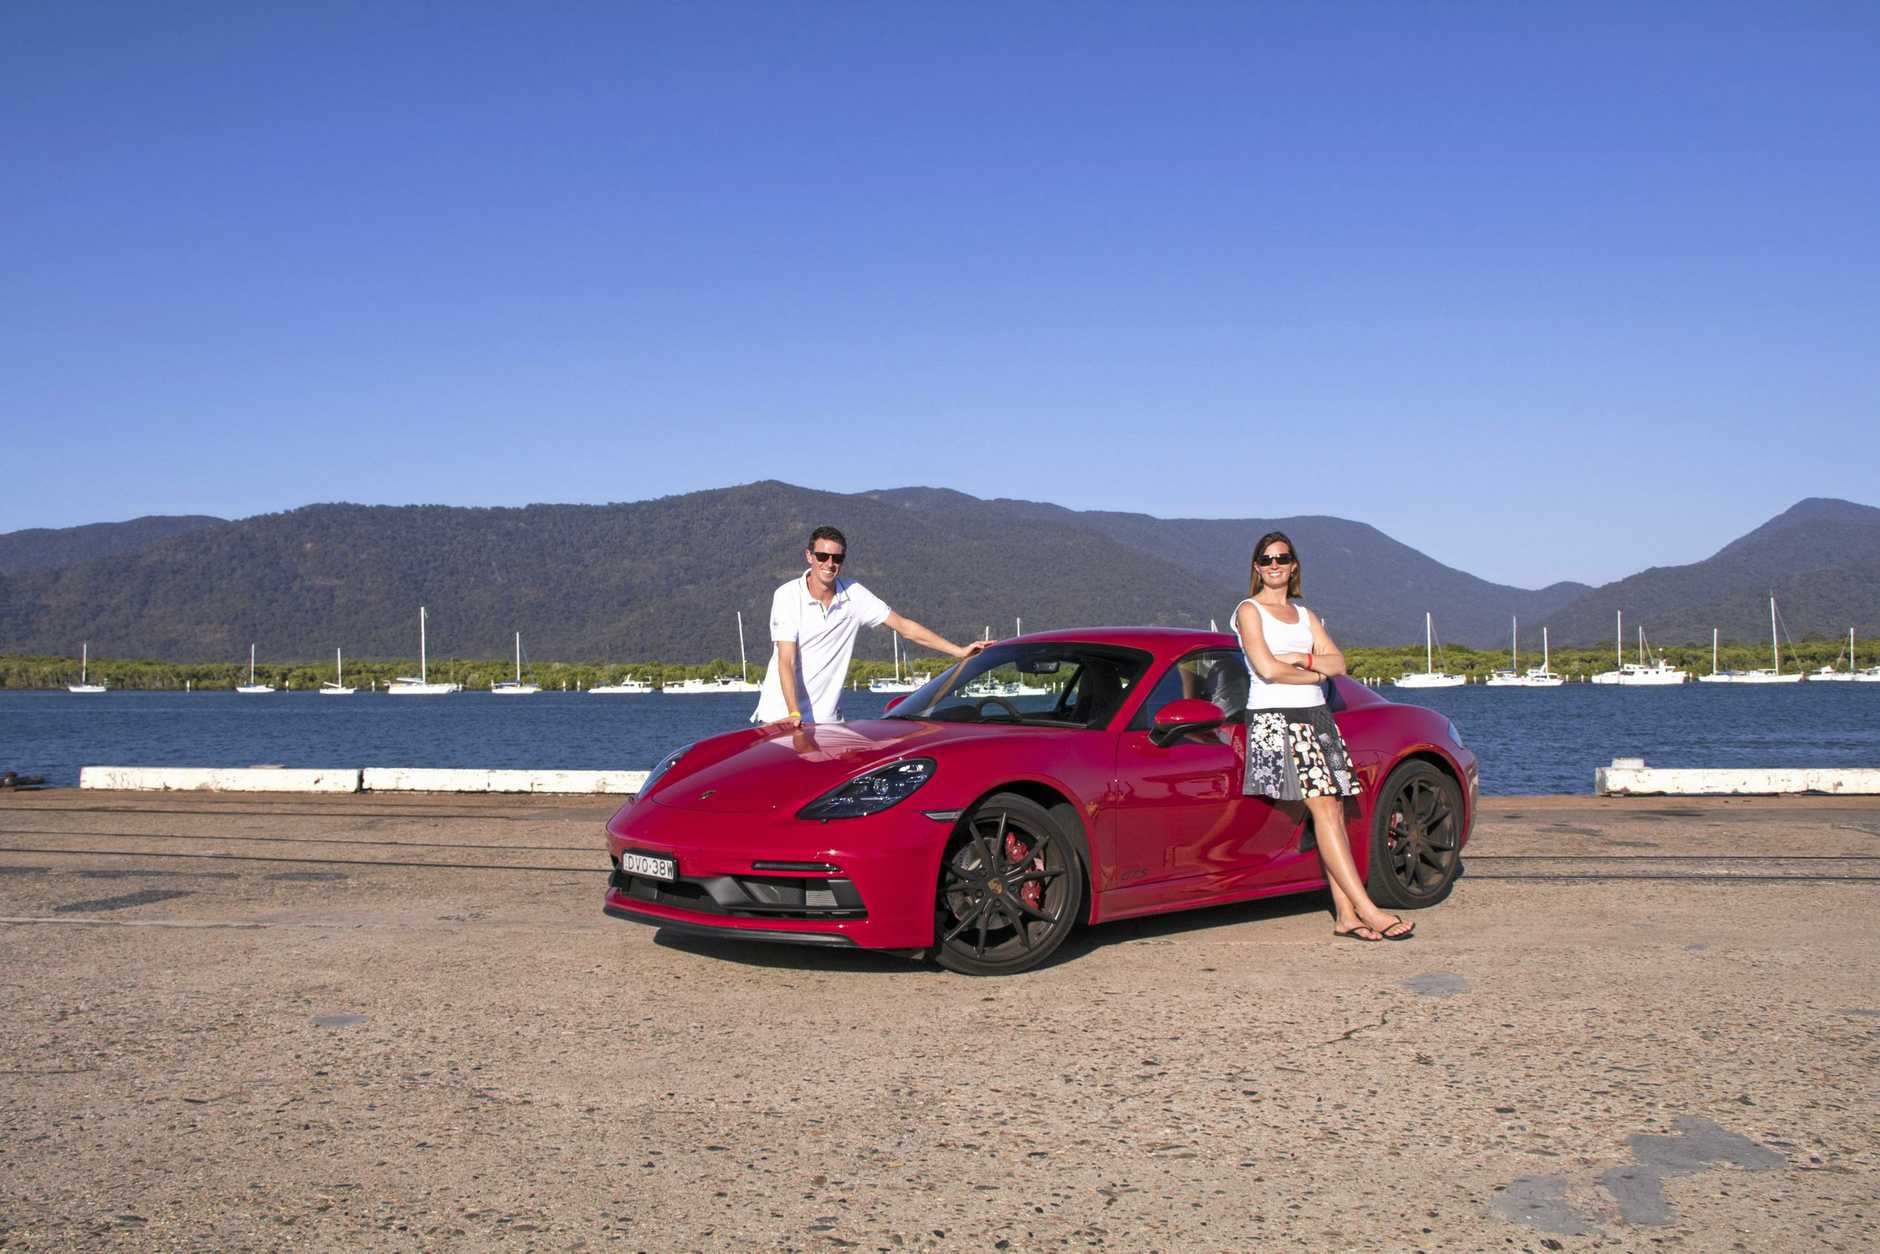 Iain Curry and Jules Lucht with their Porsche 718 Cayman GTS at Targa Great Barrier Reef.